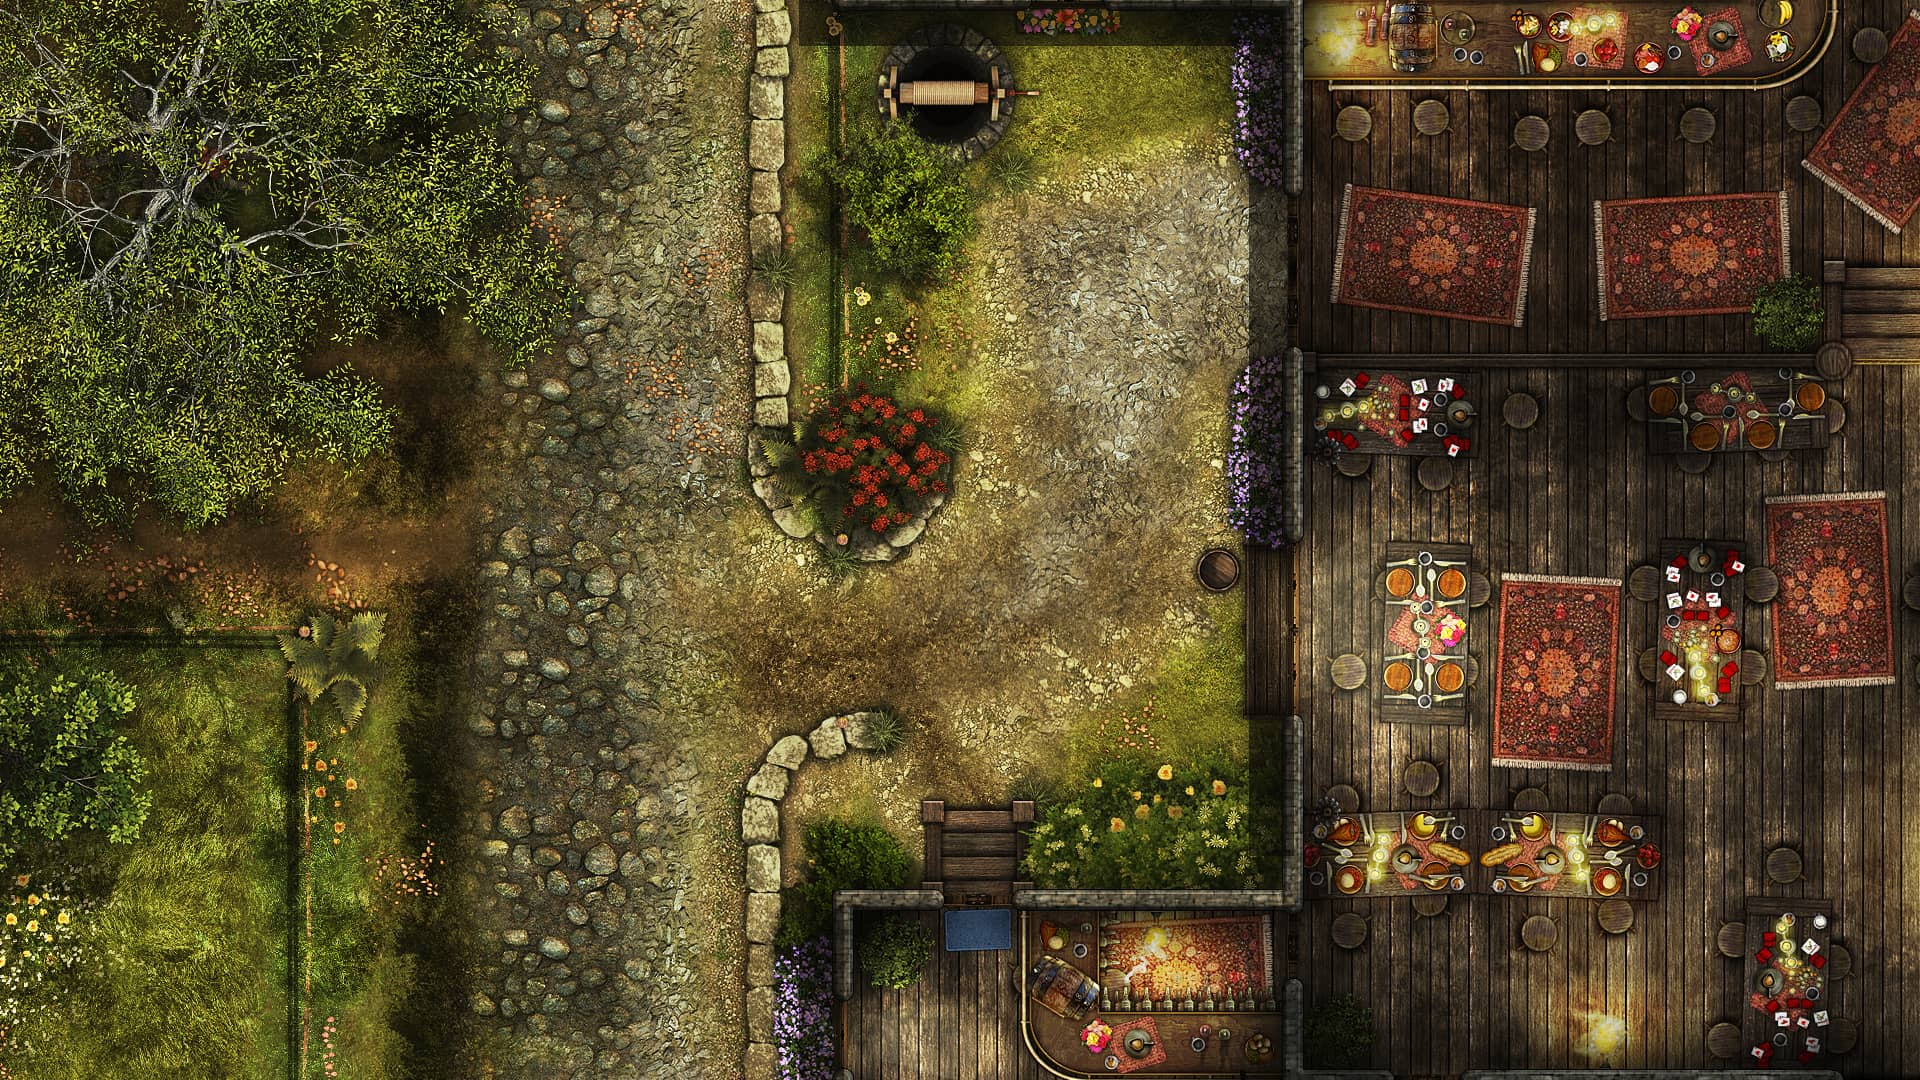 The Welshly Arms Inn Store Skirmish Virtual Tabletop